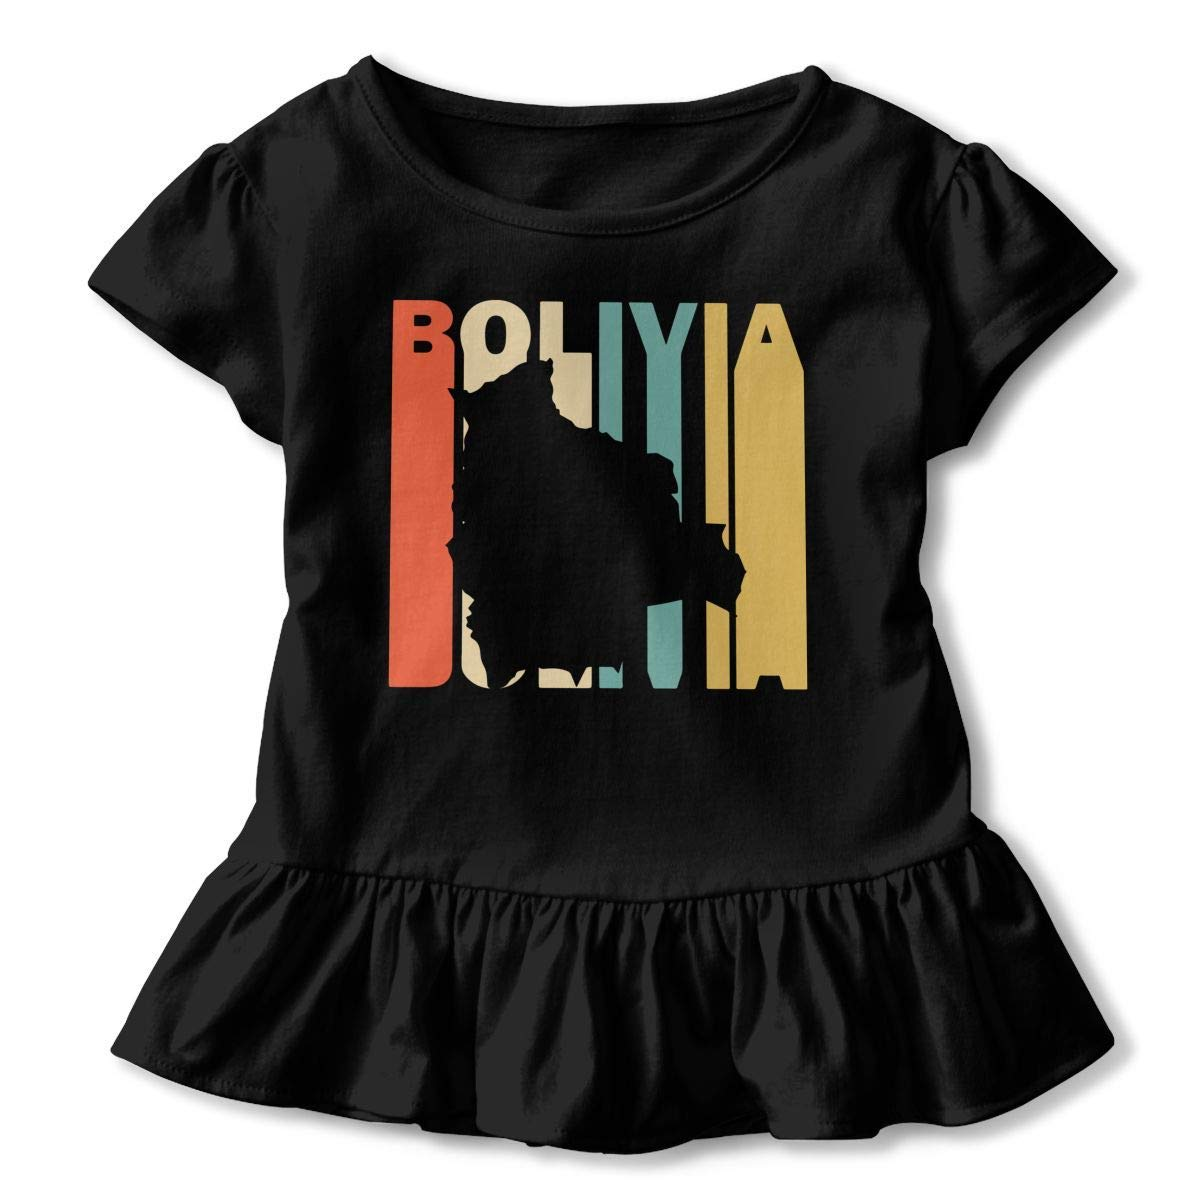 Short Sleeve Retro Style Bolivia Silhouette T-Shirts for Kids Fashion Blouse Clothes with Falbala 2-6T